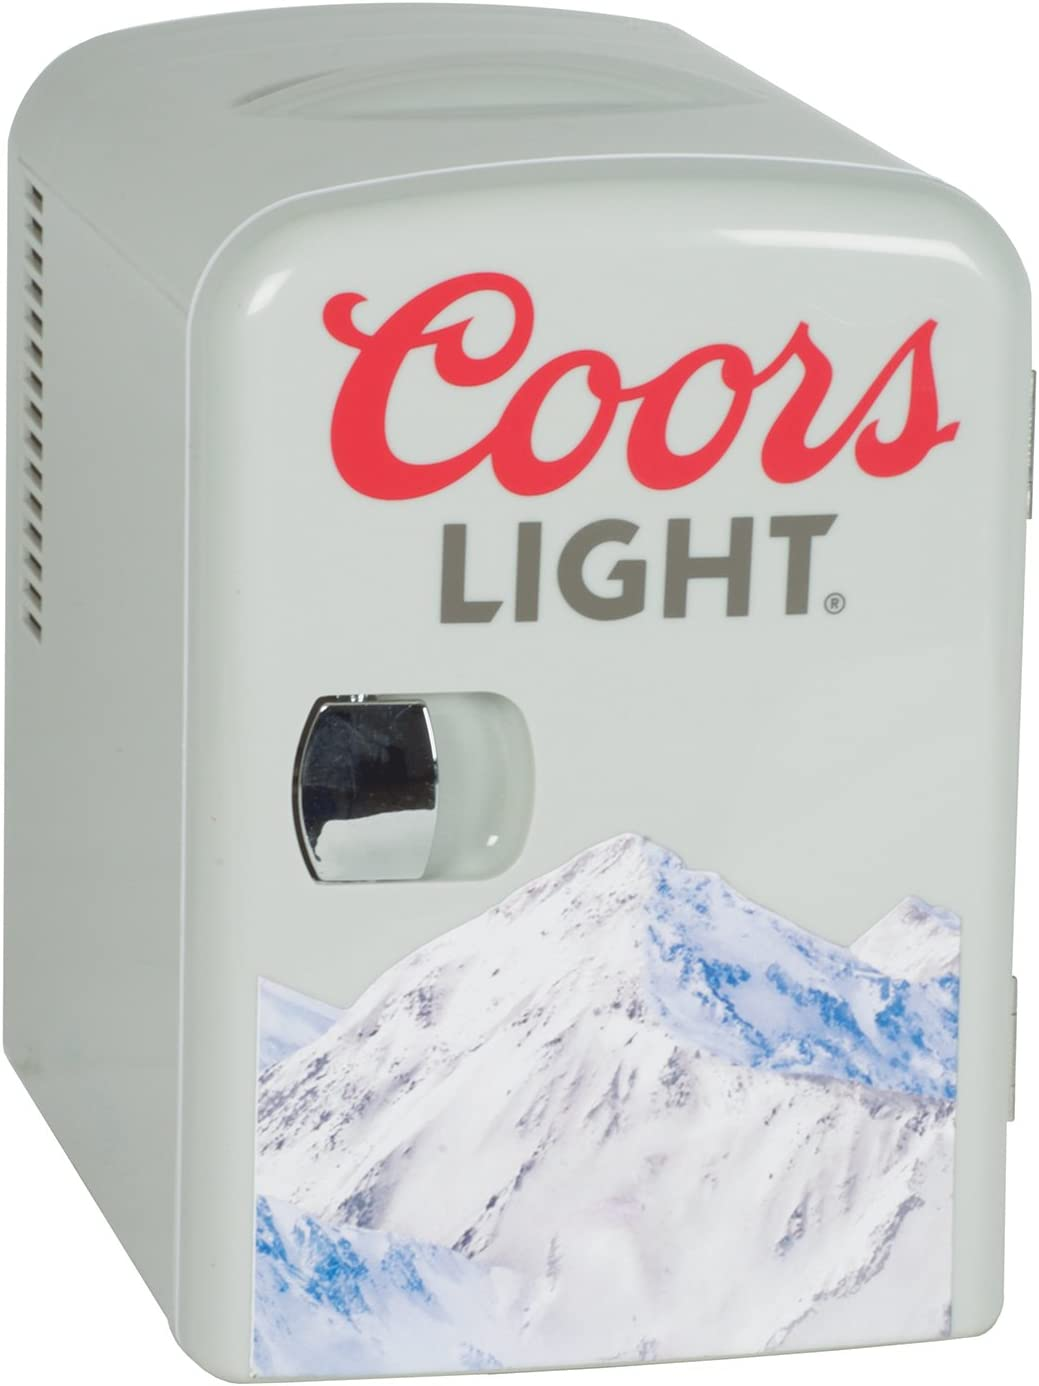 Coors Light CL04 059586647062 Can Cooler, Silver